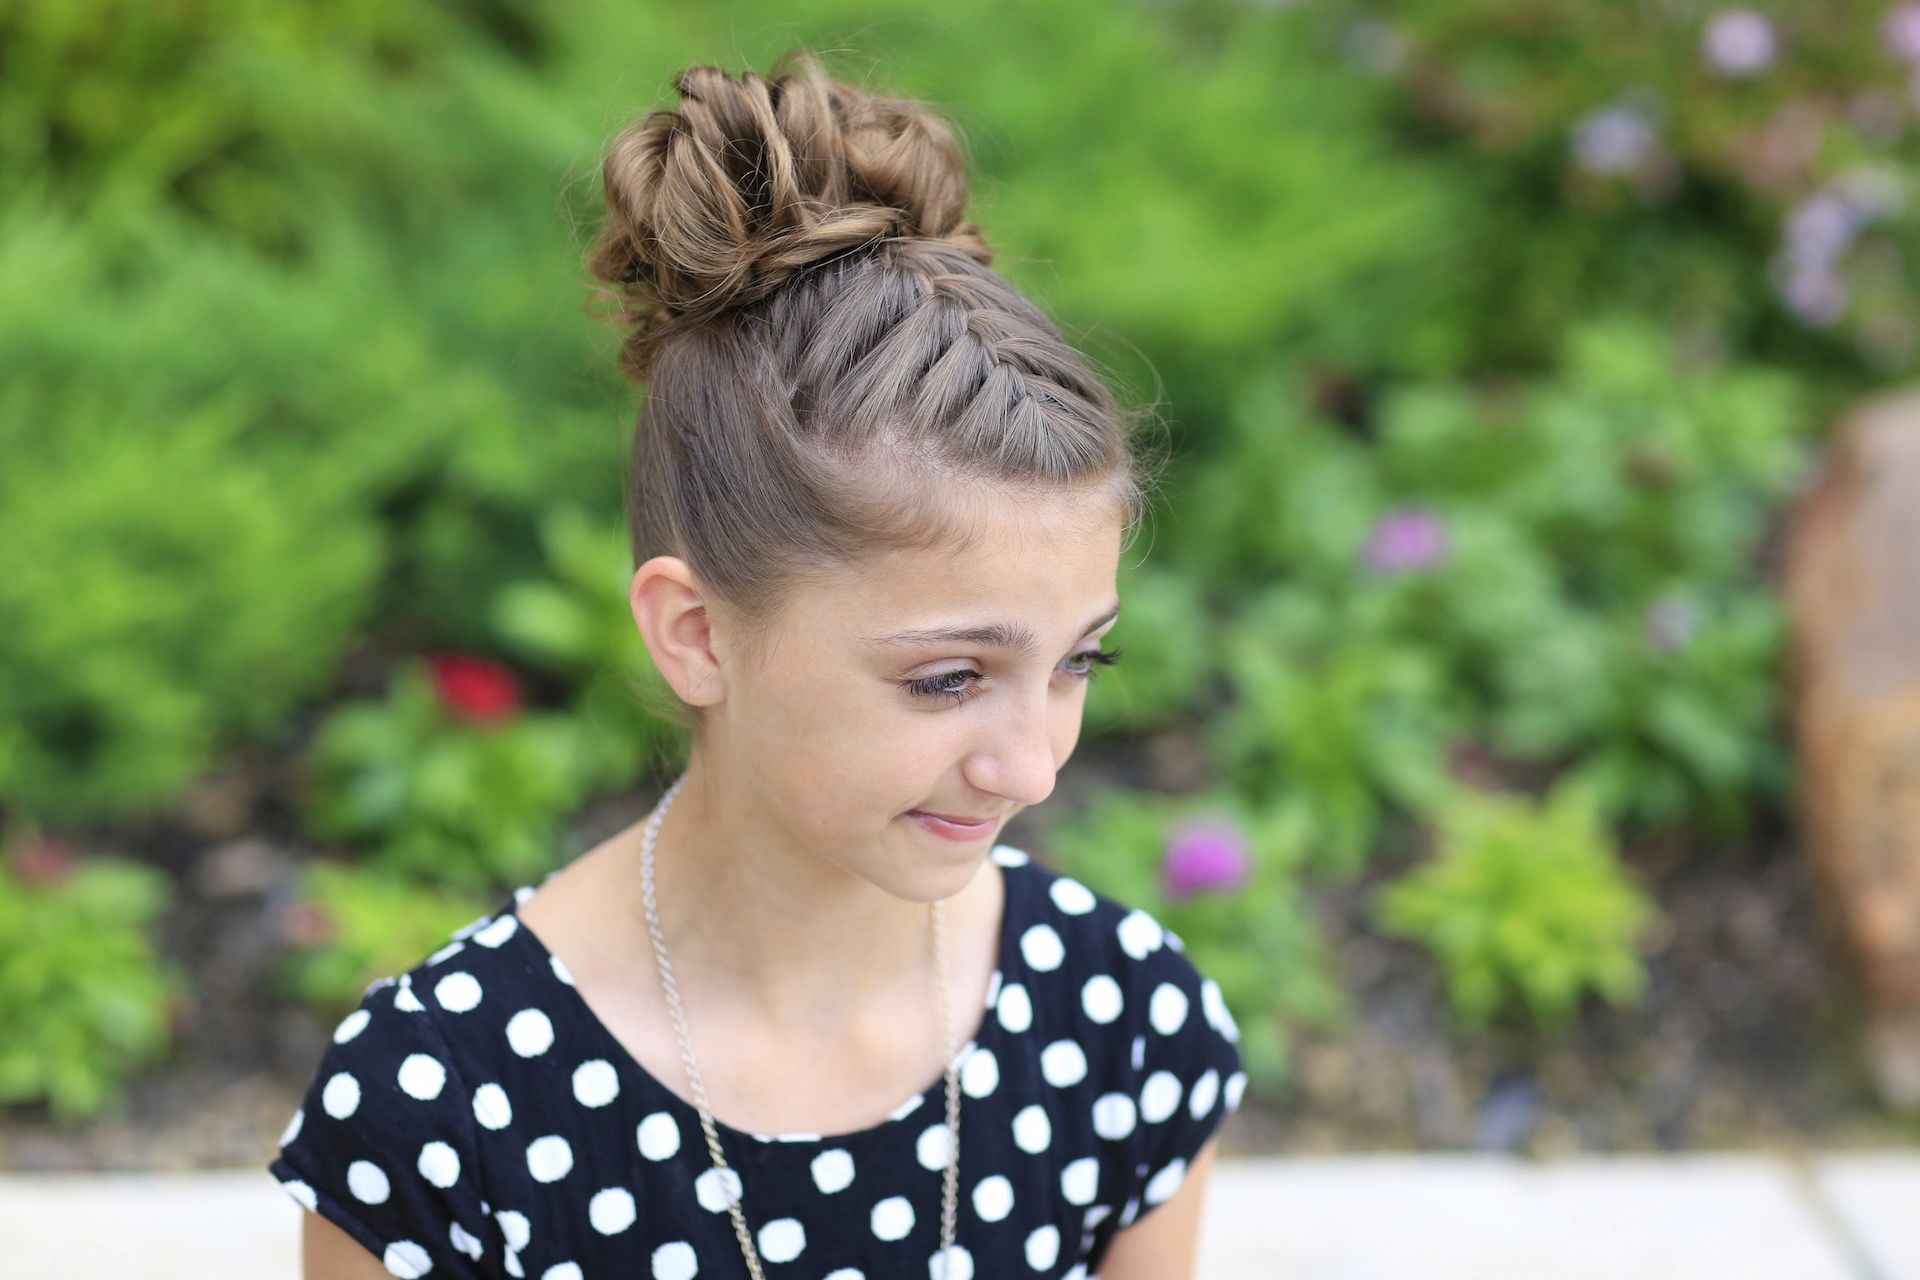 Cute Girl Hairstyles Image Result For Cute Girls Hairstyles Buns  Cute Girls Hairstyles